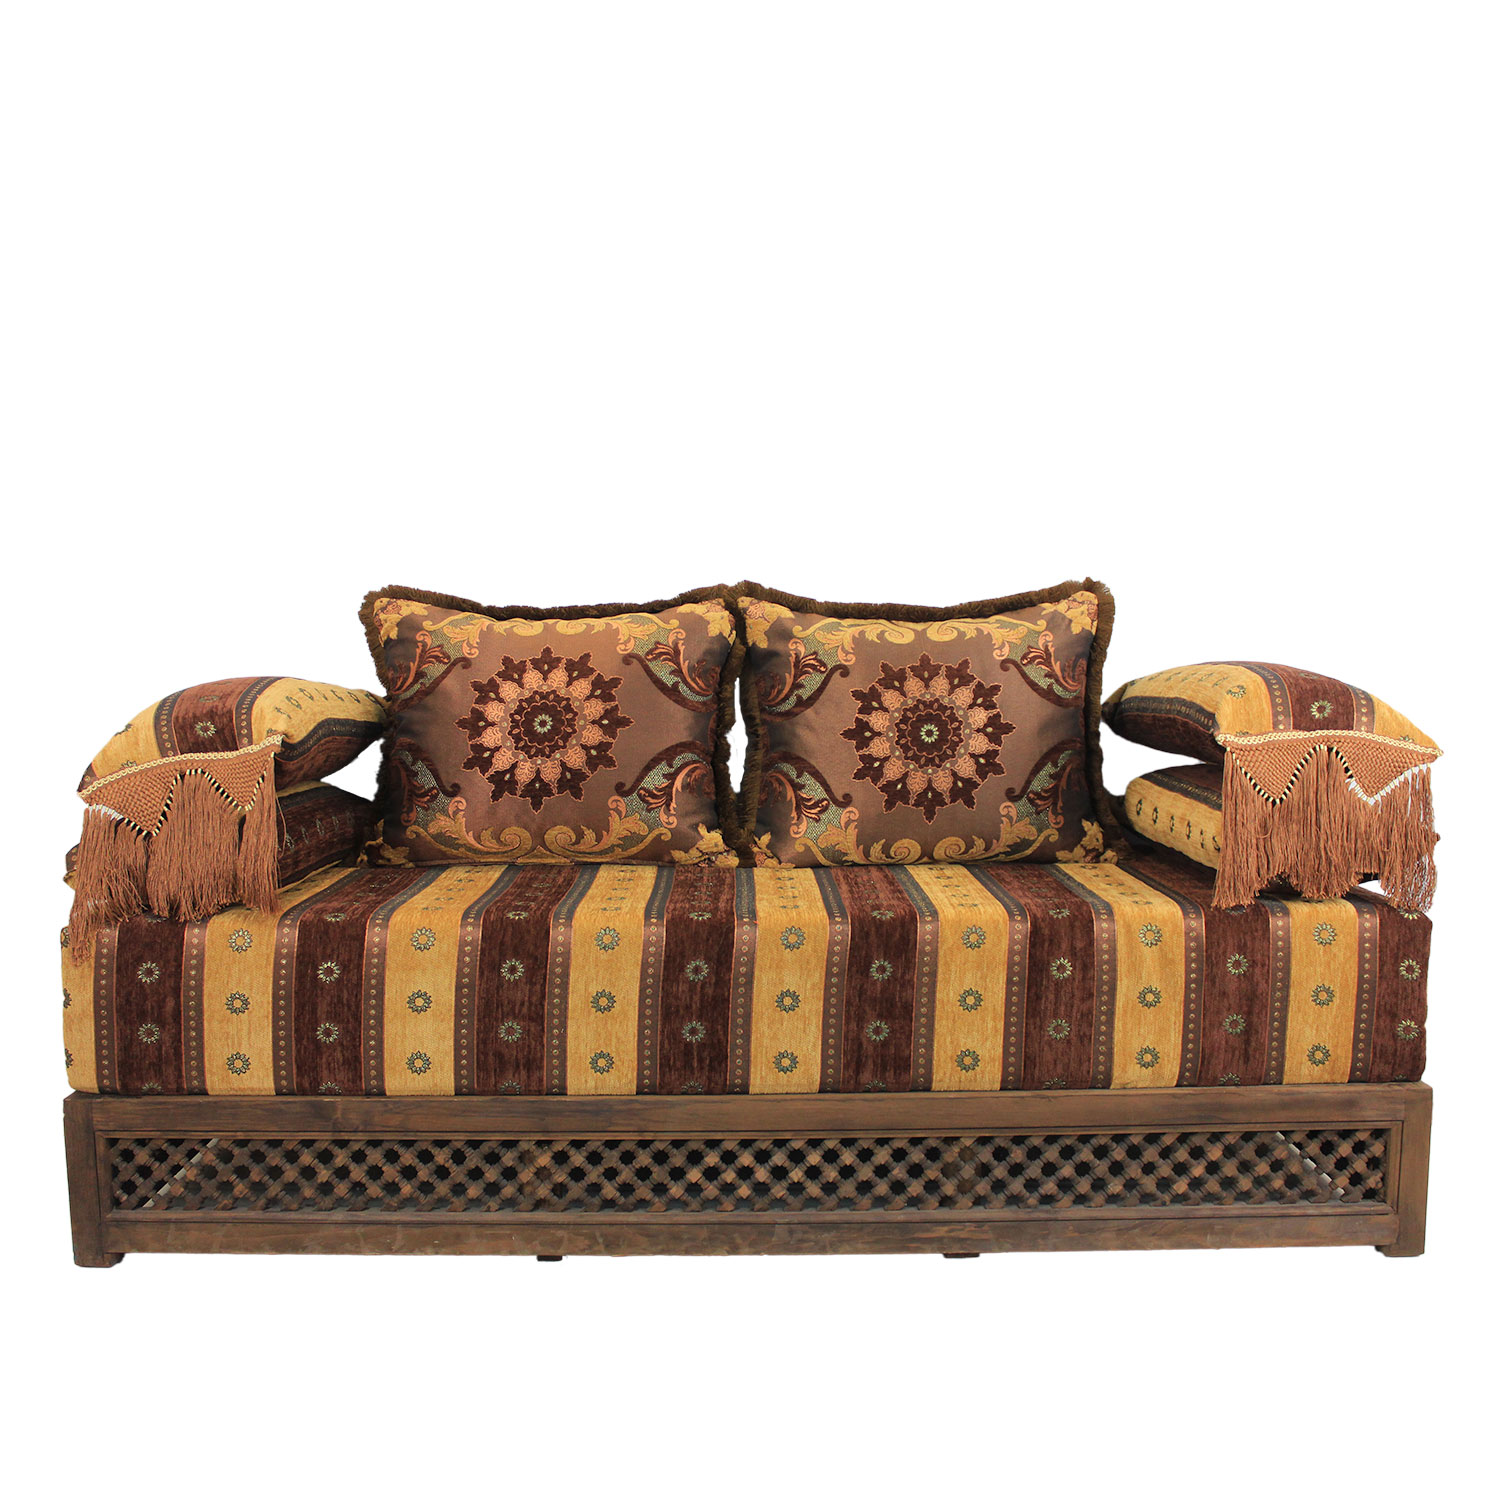 orientalisches sofa samira bei ihrem orient shop casa moro. Black Bedroom Furniture Sets. Home Design Ideas